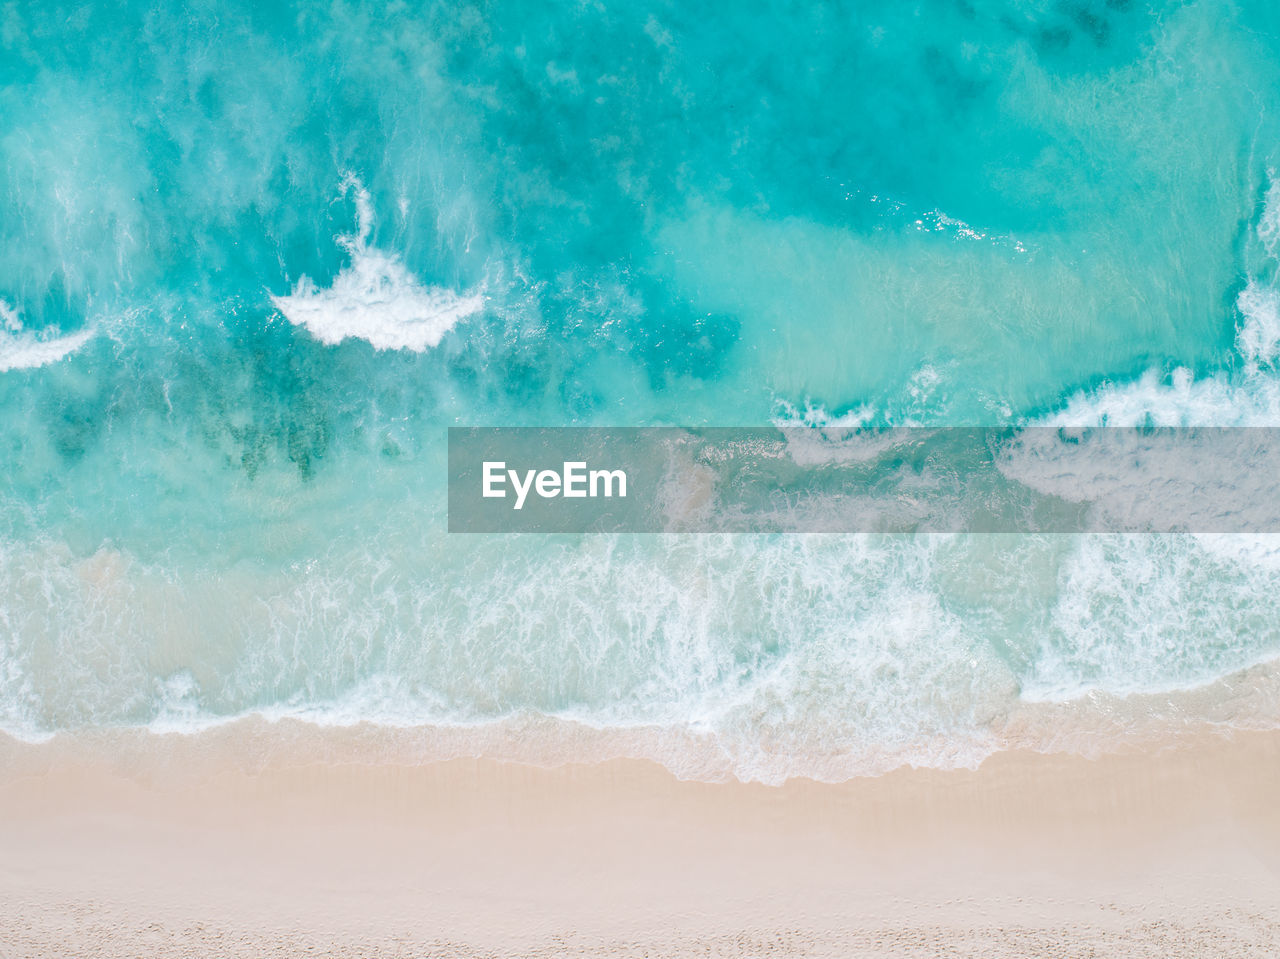 water, sea, wave, beach, land, motion, sport, surfing, aquatic sport, beauty in nature, nature, sand, scenics - nature, day, sky, outdoors, cloud - sky, power in nature, turquoise colored, breaking